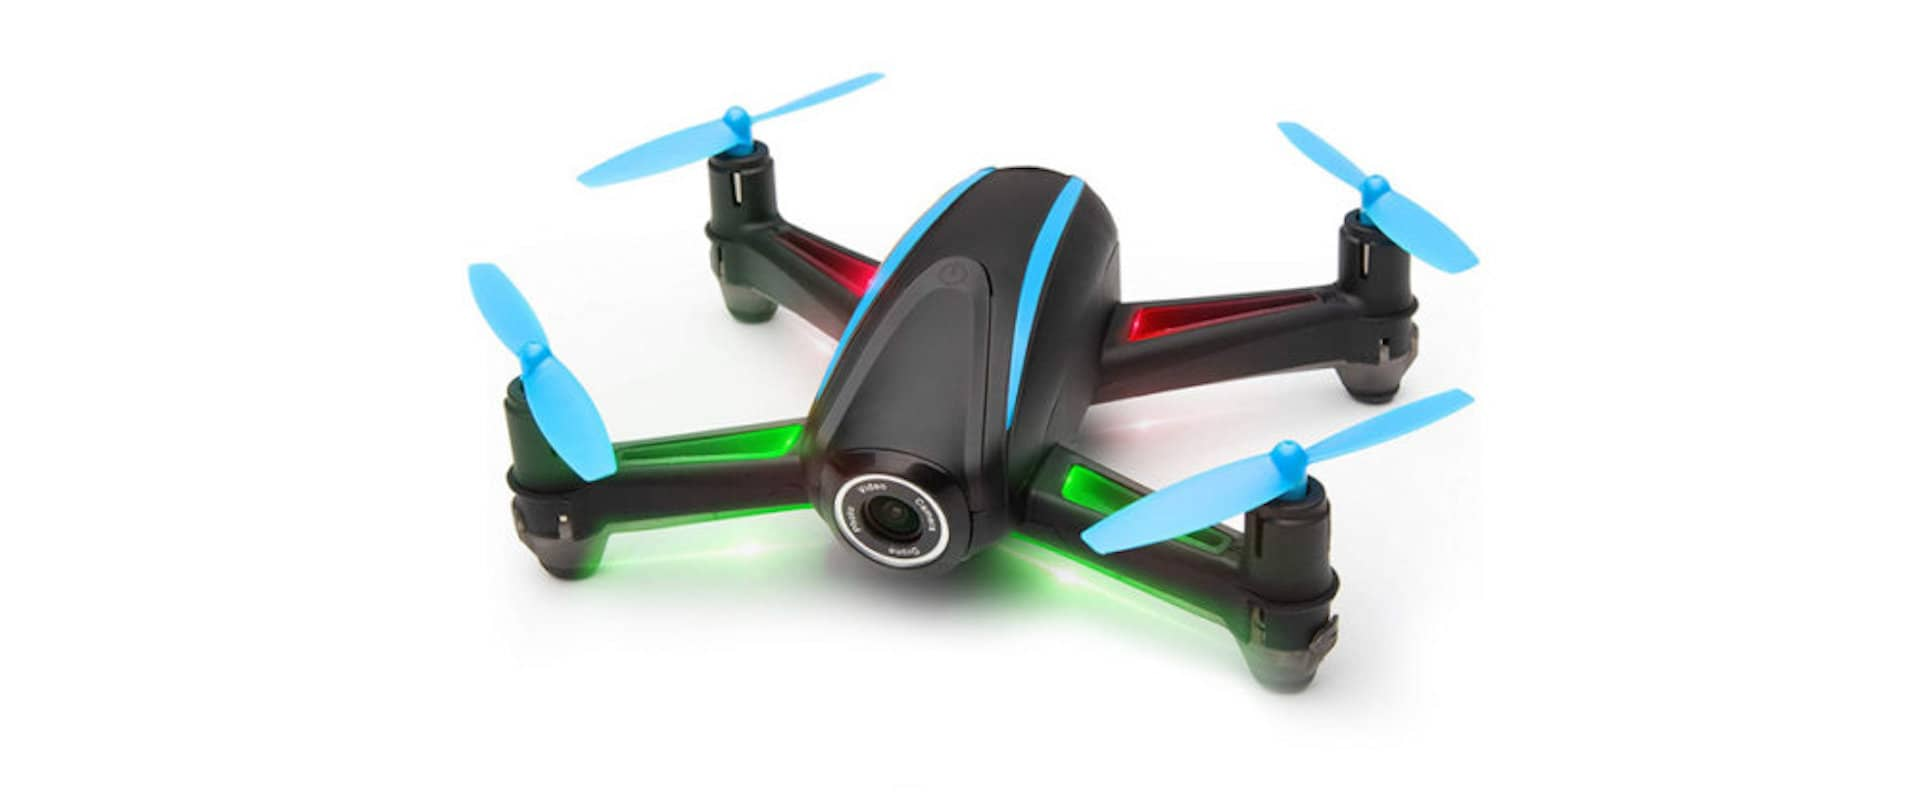 Best Photo Gifts for Photographers - Ideas Photographer Lovers - Force Mini Drone